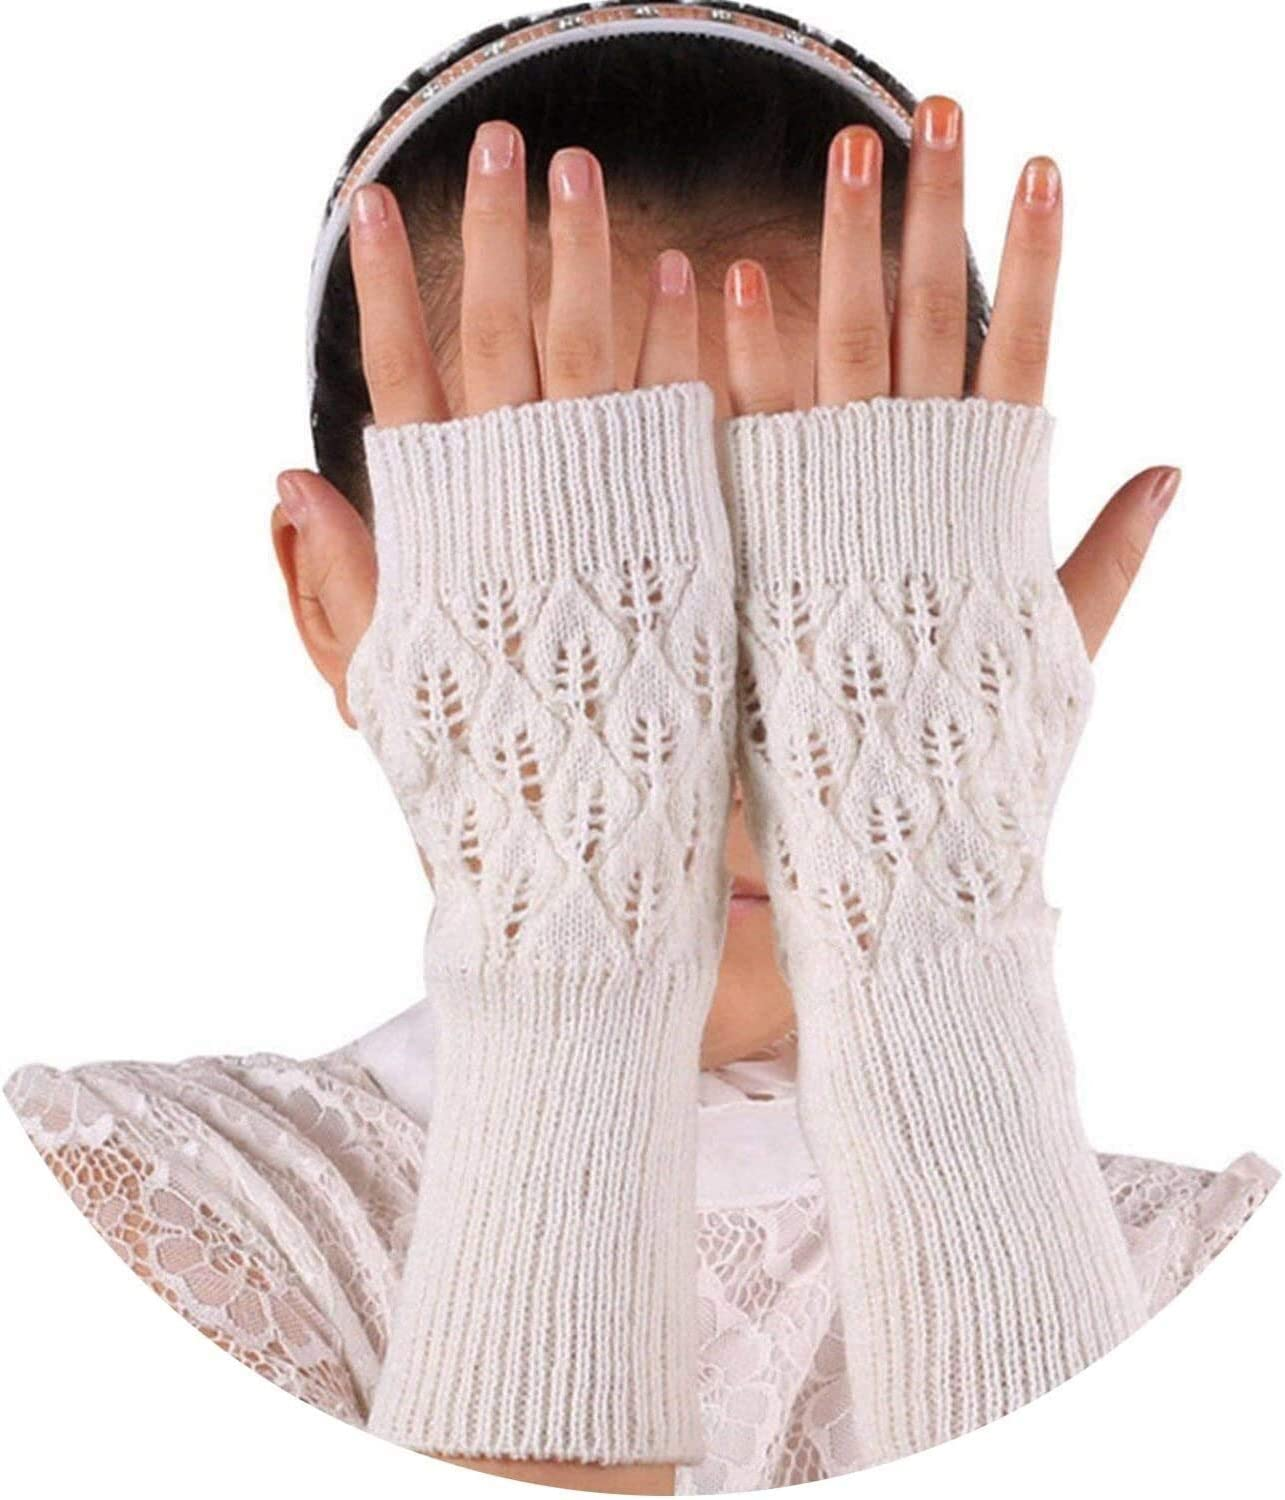 Samantha Warm Gloves Warm Knitted Fingerless Gloves Hollow Out Leaves Long Section Winter Long Fingerless Knitting Wool Mittens (Color : White, Size : Oneszie)